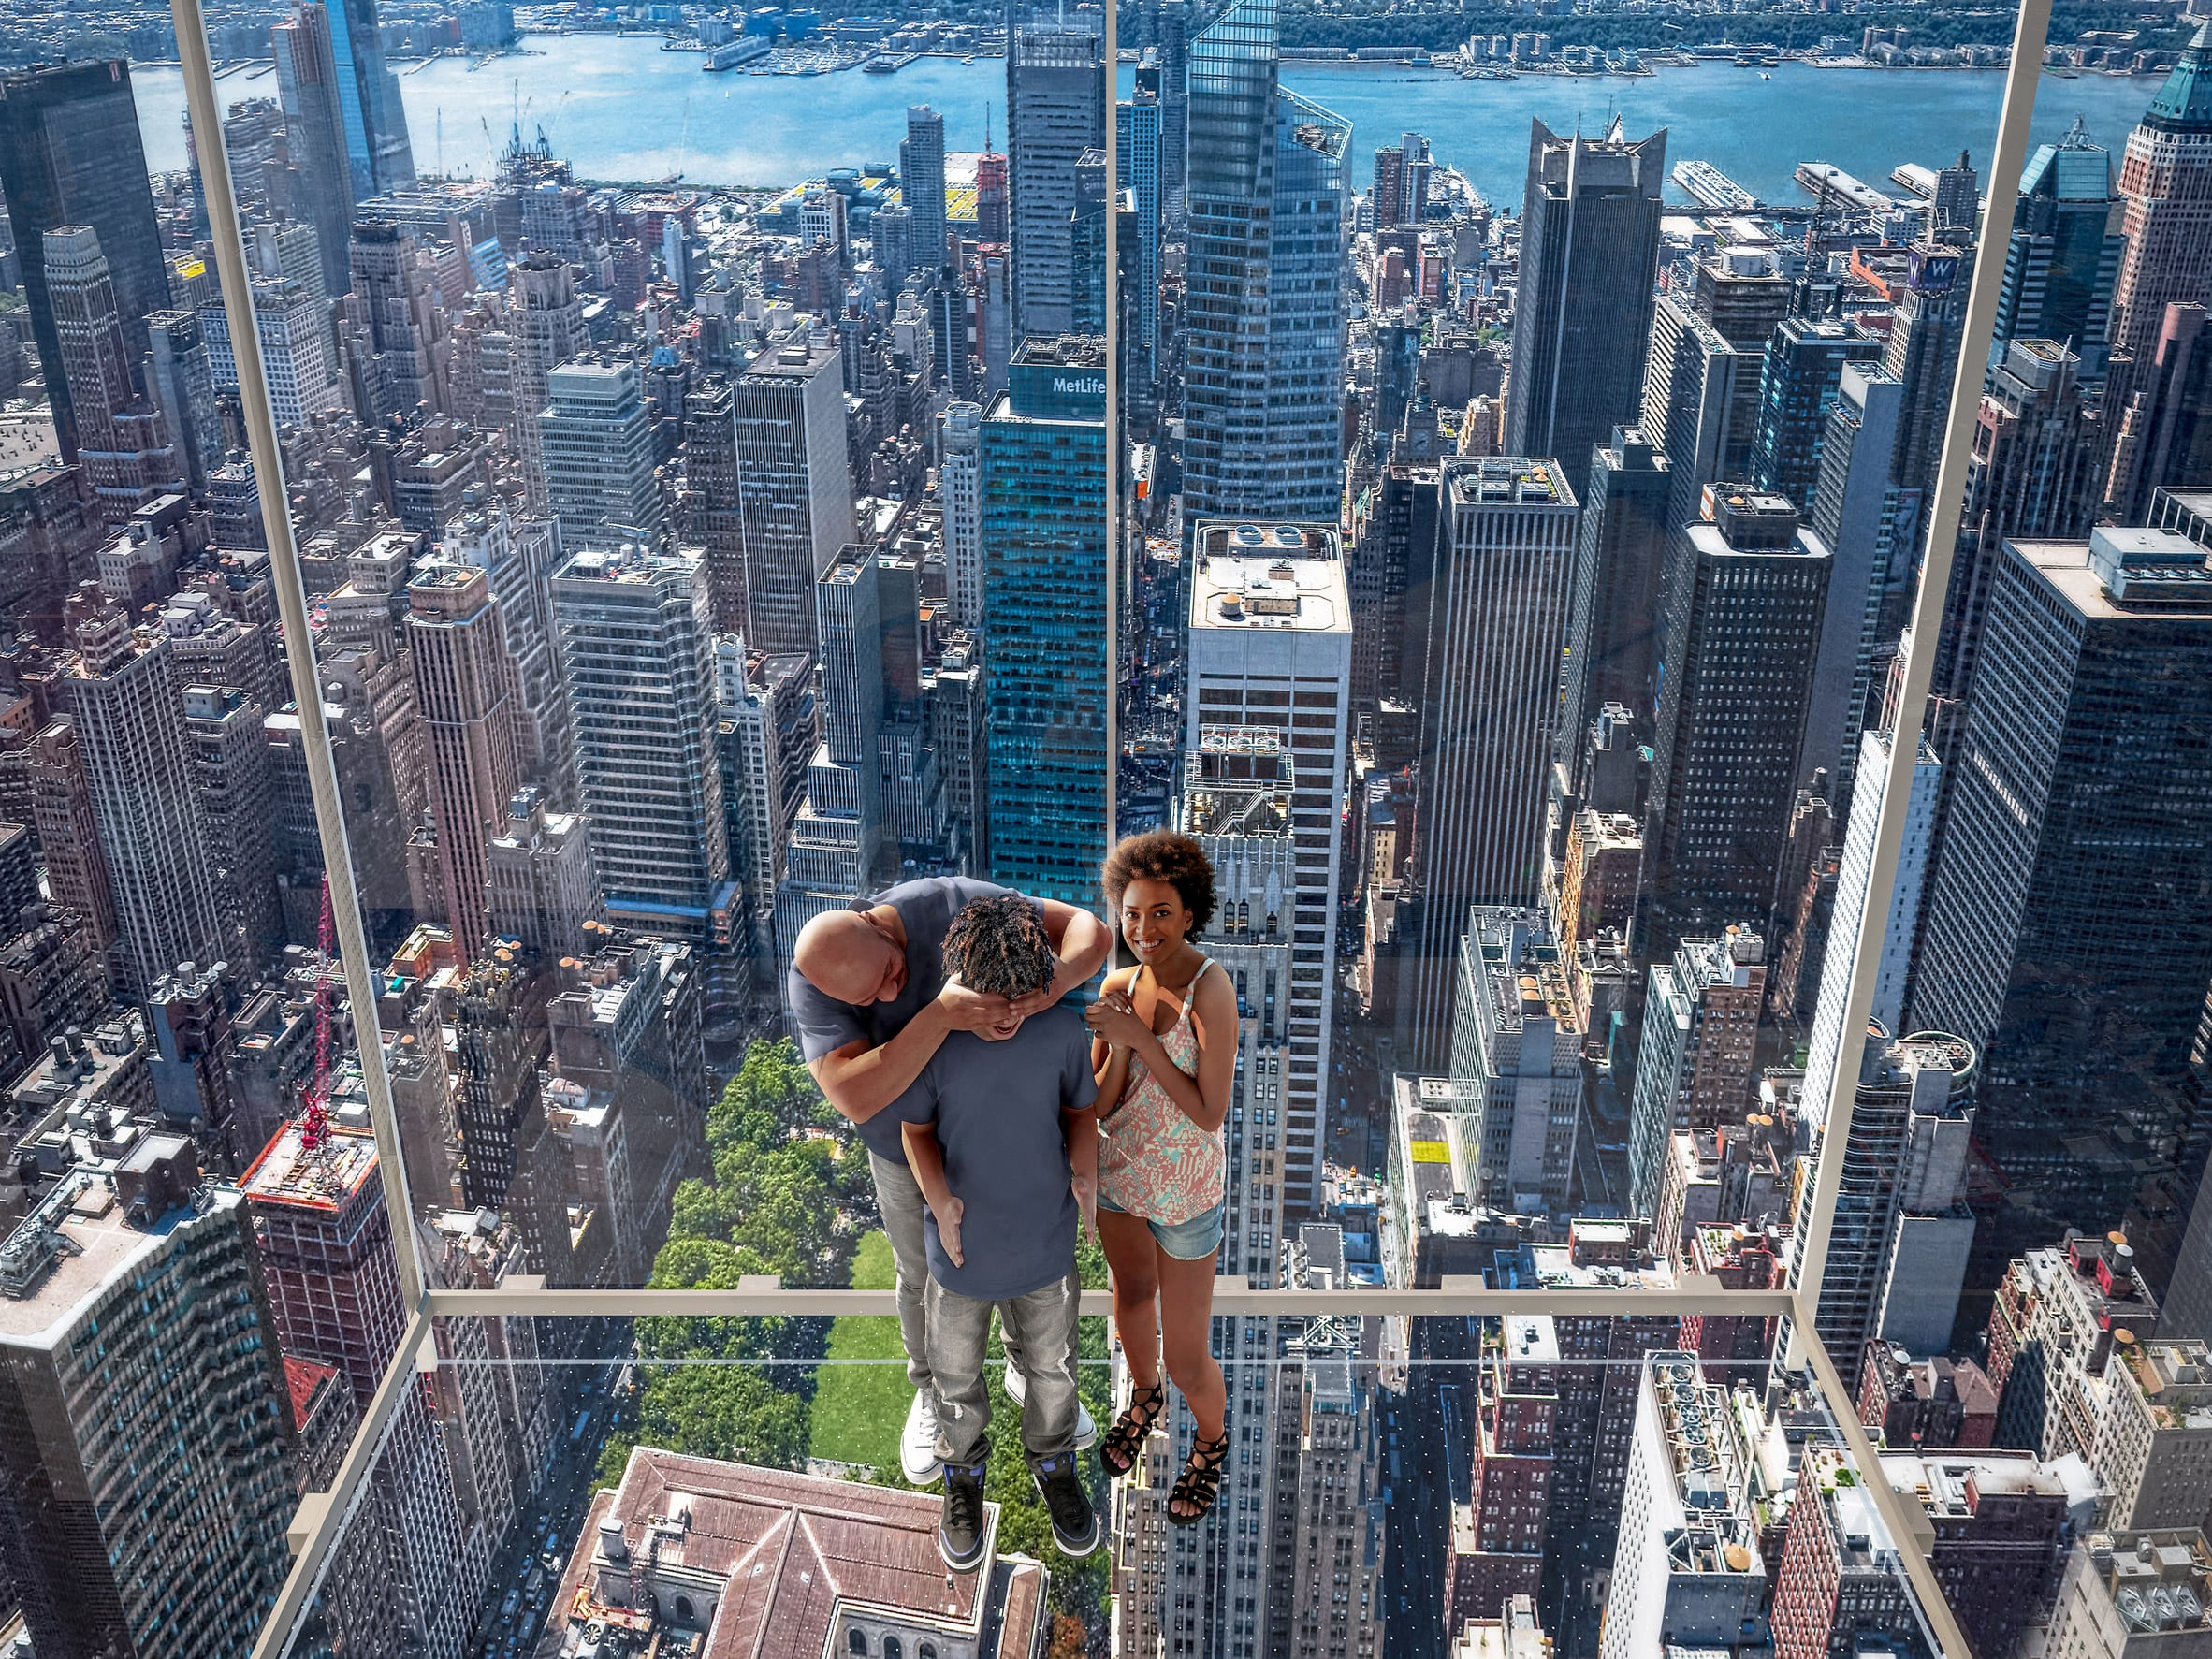 Levitation attraction at a supertall skyscraper designed by KPF